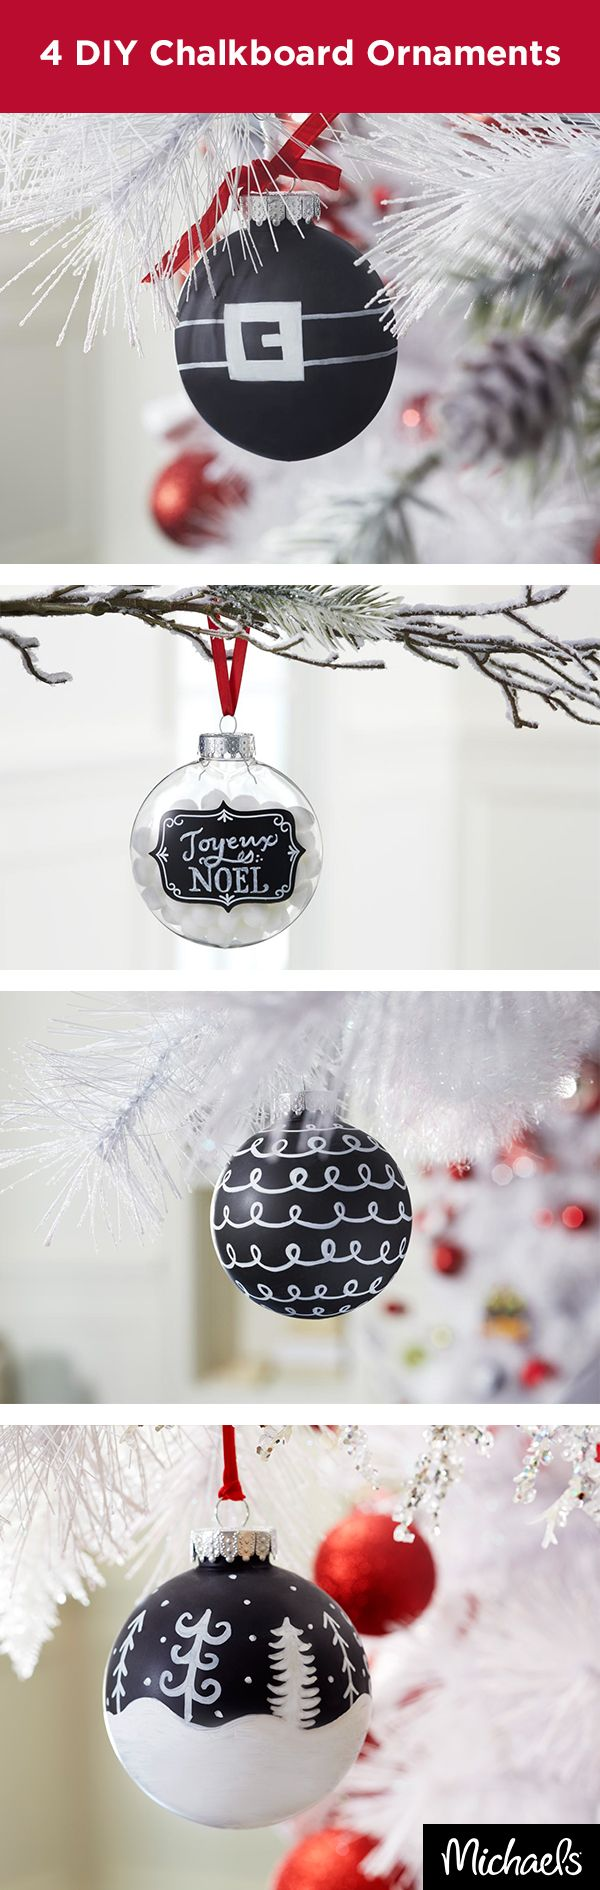 Creating a DIY ornament is easier than ever with chalkboard shatterproof ornaments. Use a chalk marker and decorate as desired for a handmade addition to your holiday tree. Find both the ornaments and chalk markers at your local Michaels store.